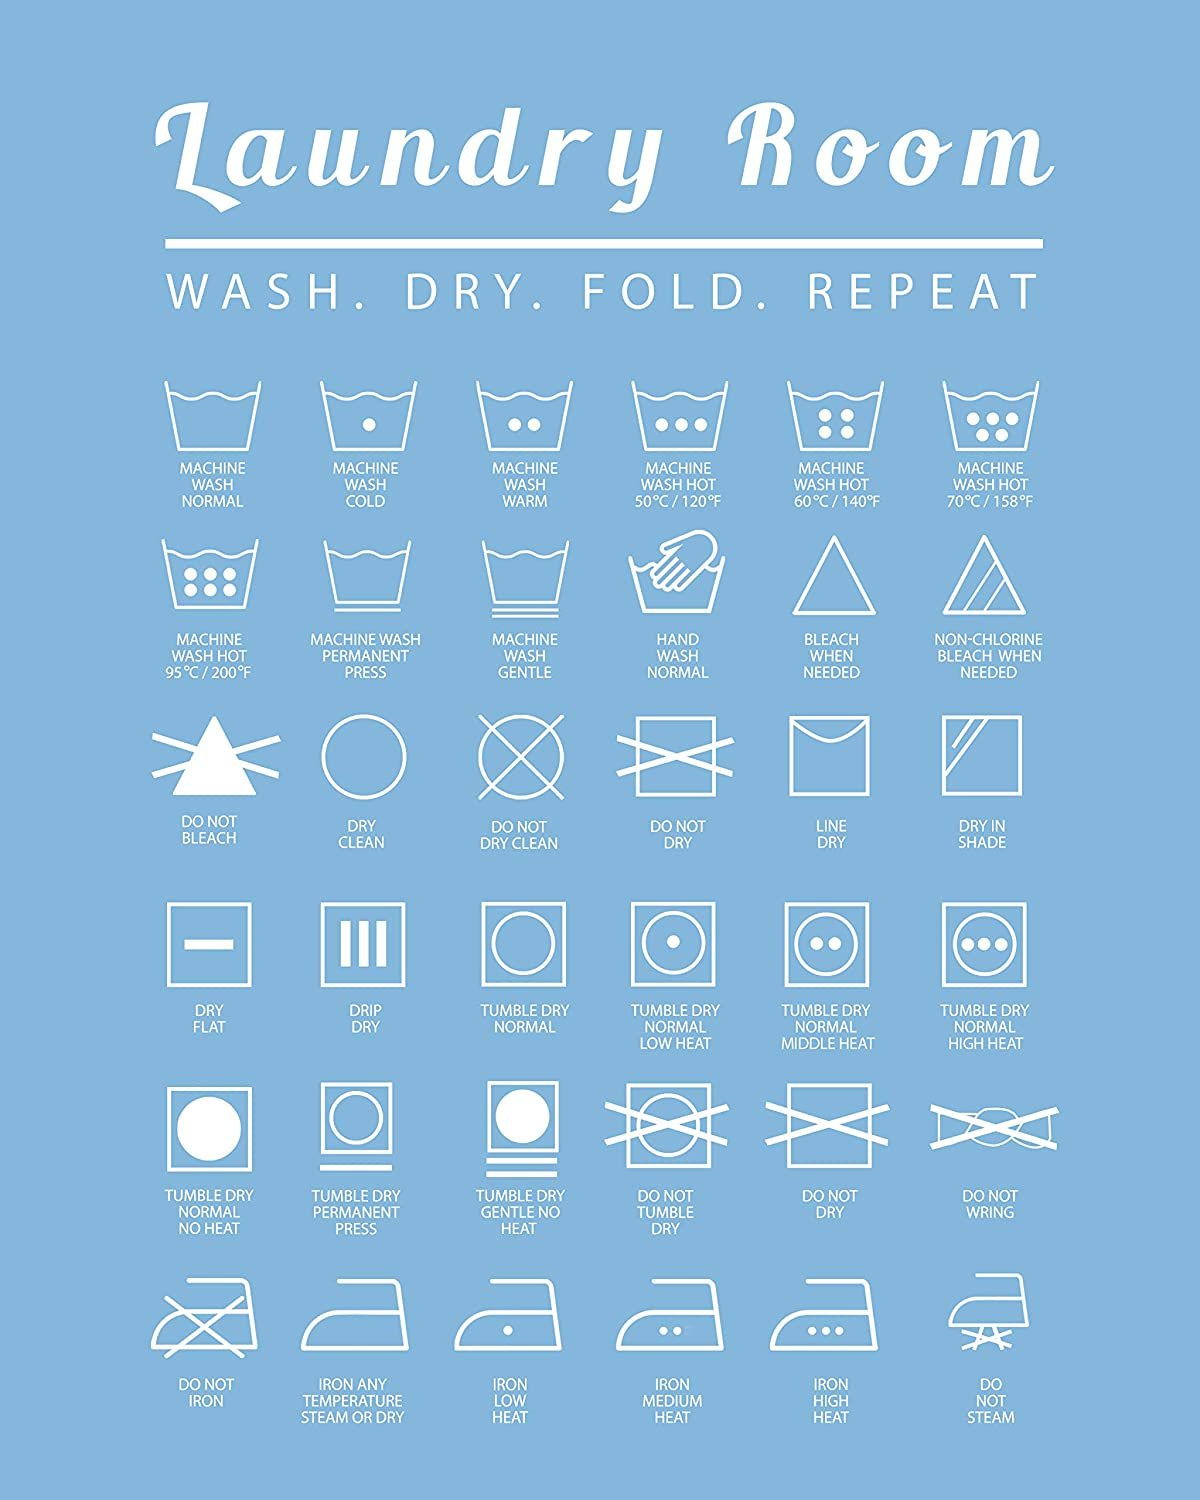 Laundry Room Wall Art Decor, 8x10 Poster Print - Unique Contemporary, Modern Home Decoration - Makes a Great Affordable Housewarming Gift - 8x10 Photo- Unframed - Teal Blue